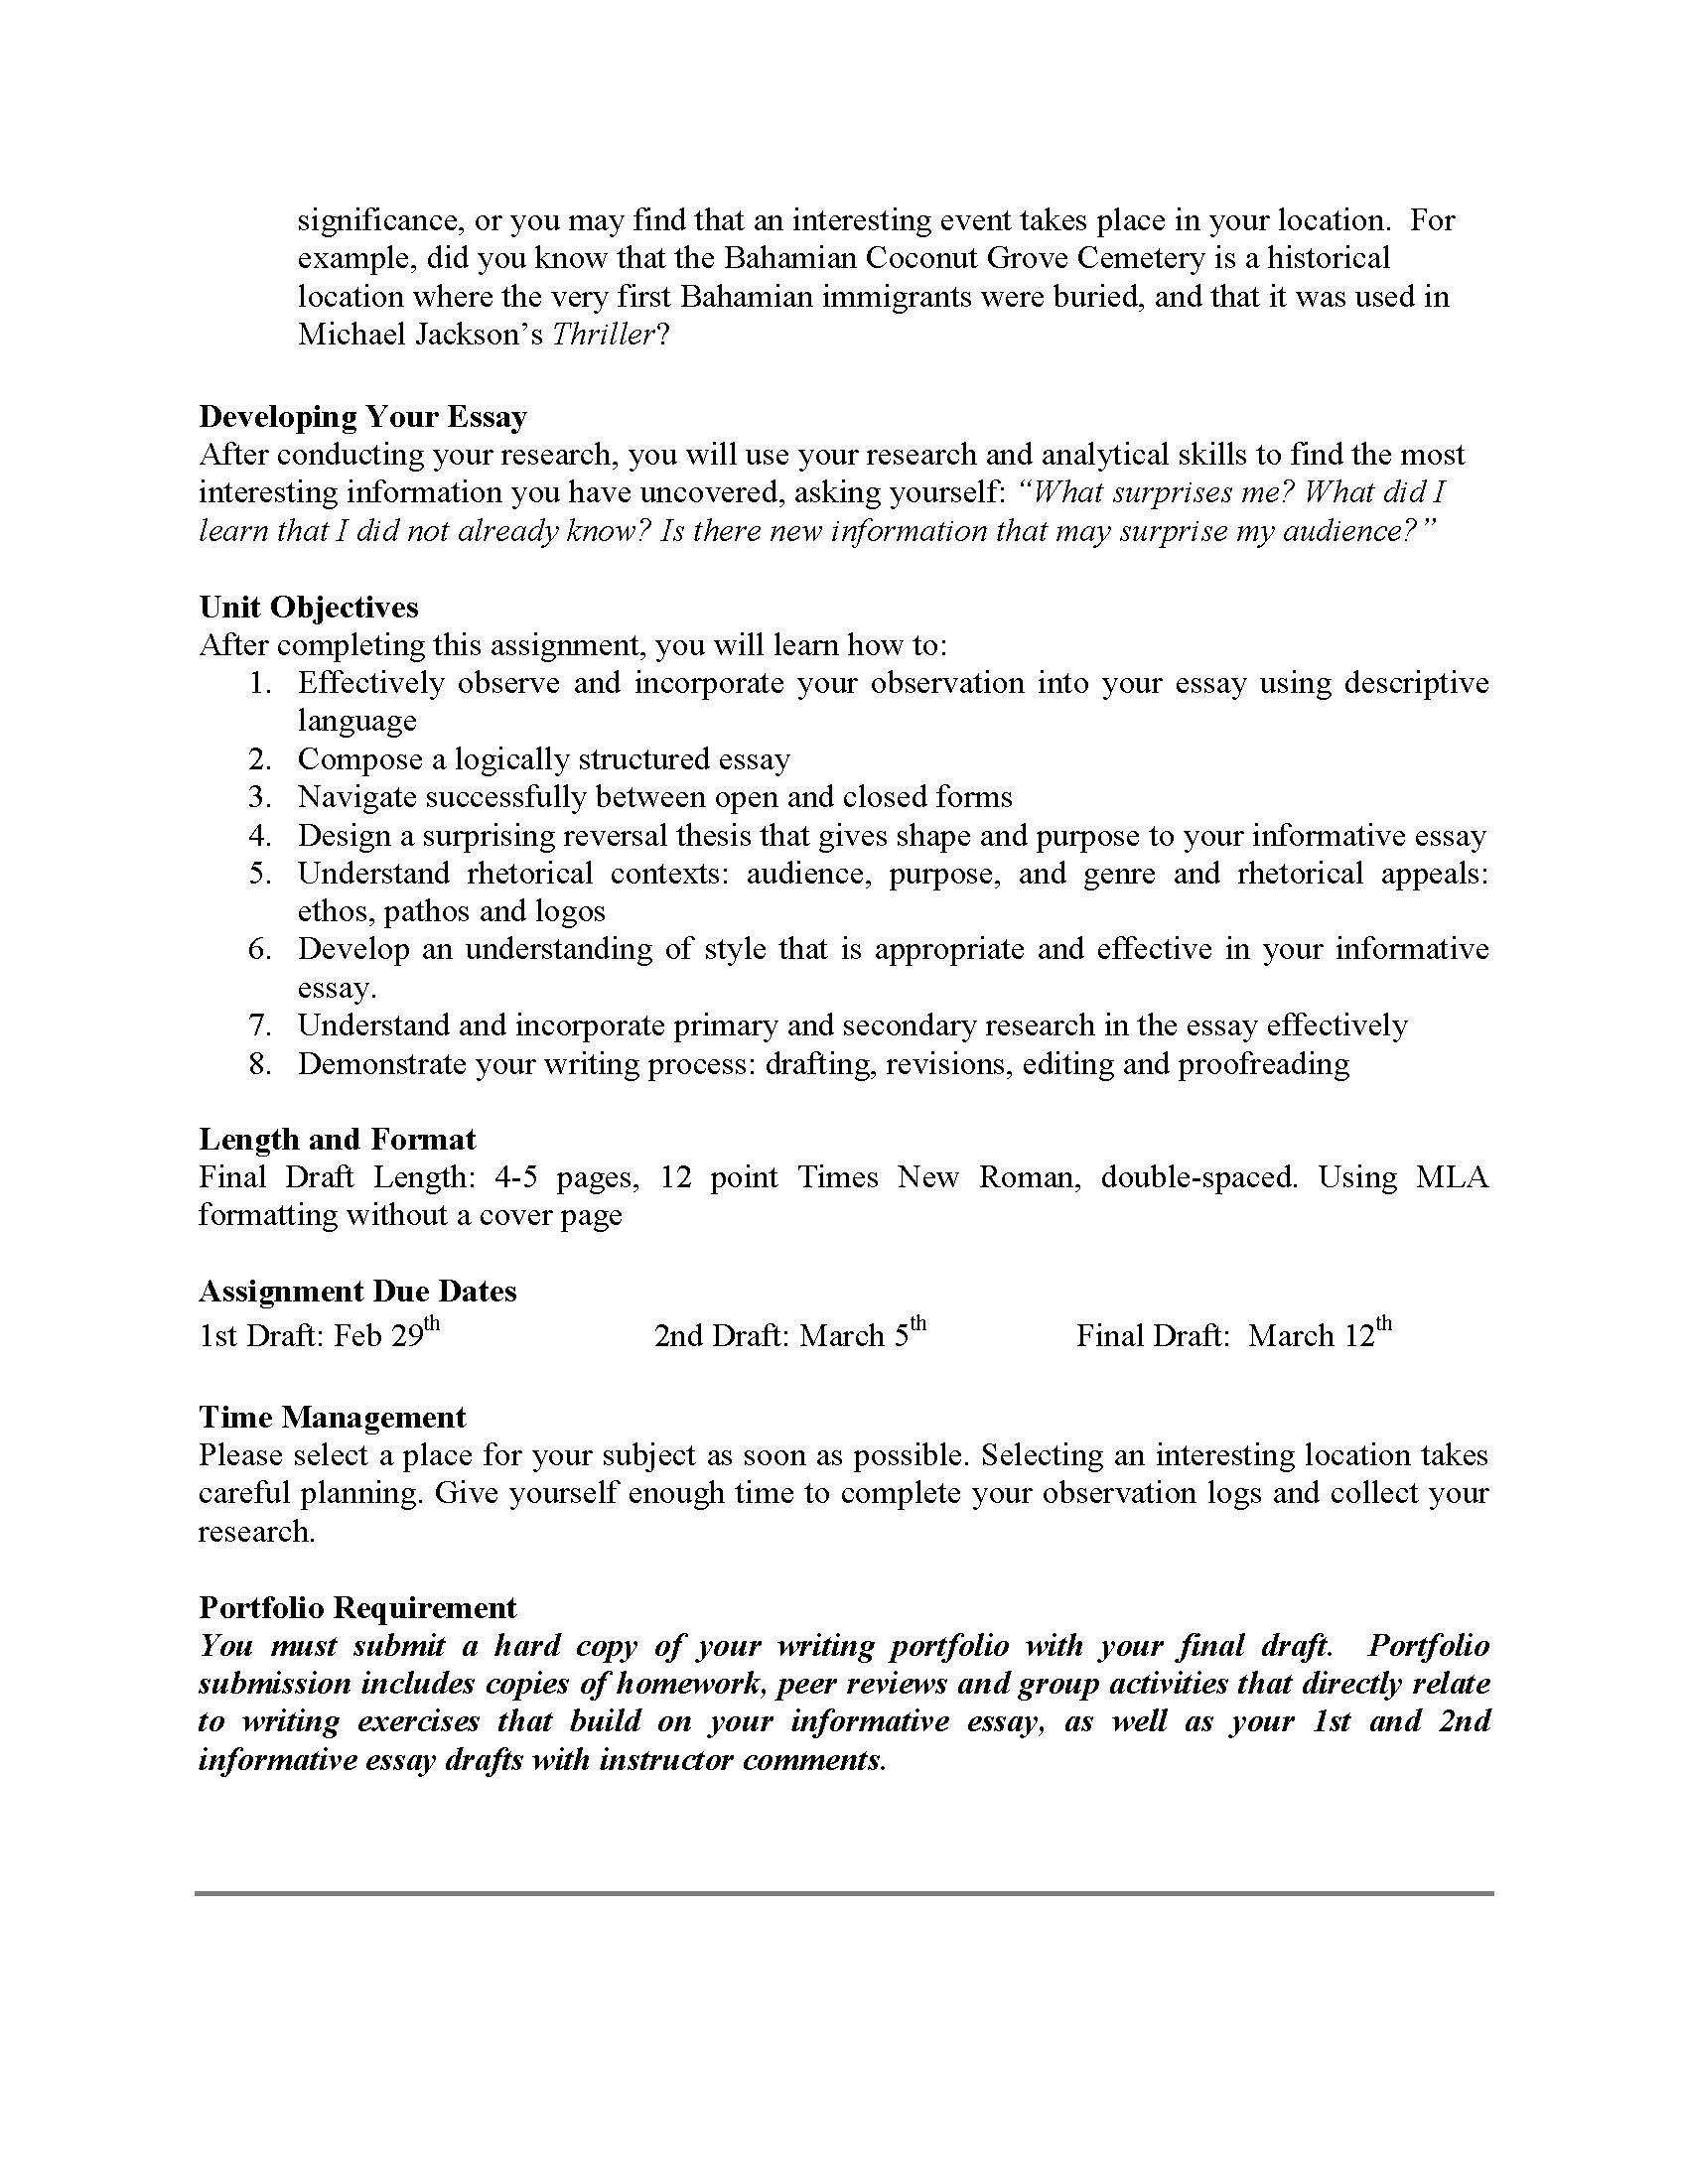 014 Informative Essay Unit Assignment Page 2 Dreaded Rubric Middle School Graphic Organizer Full